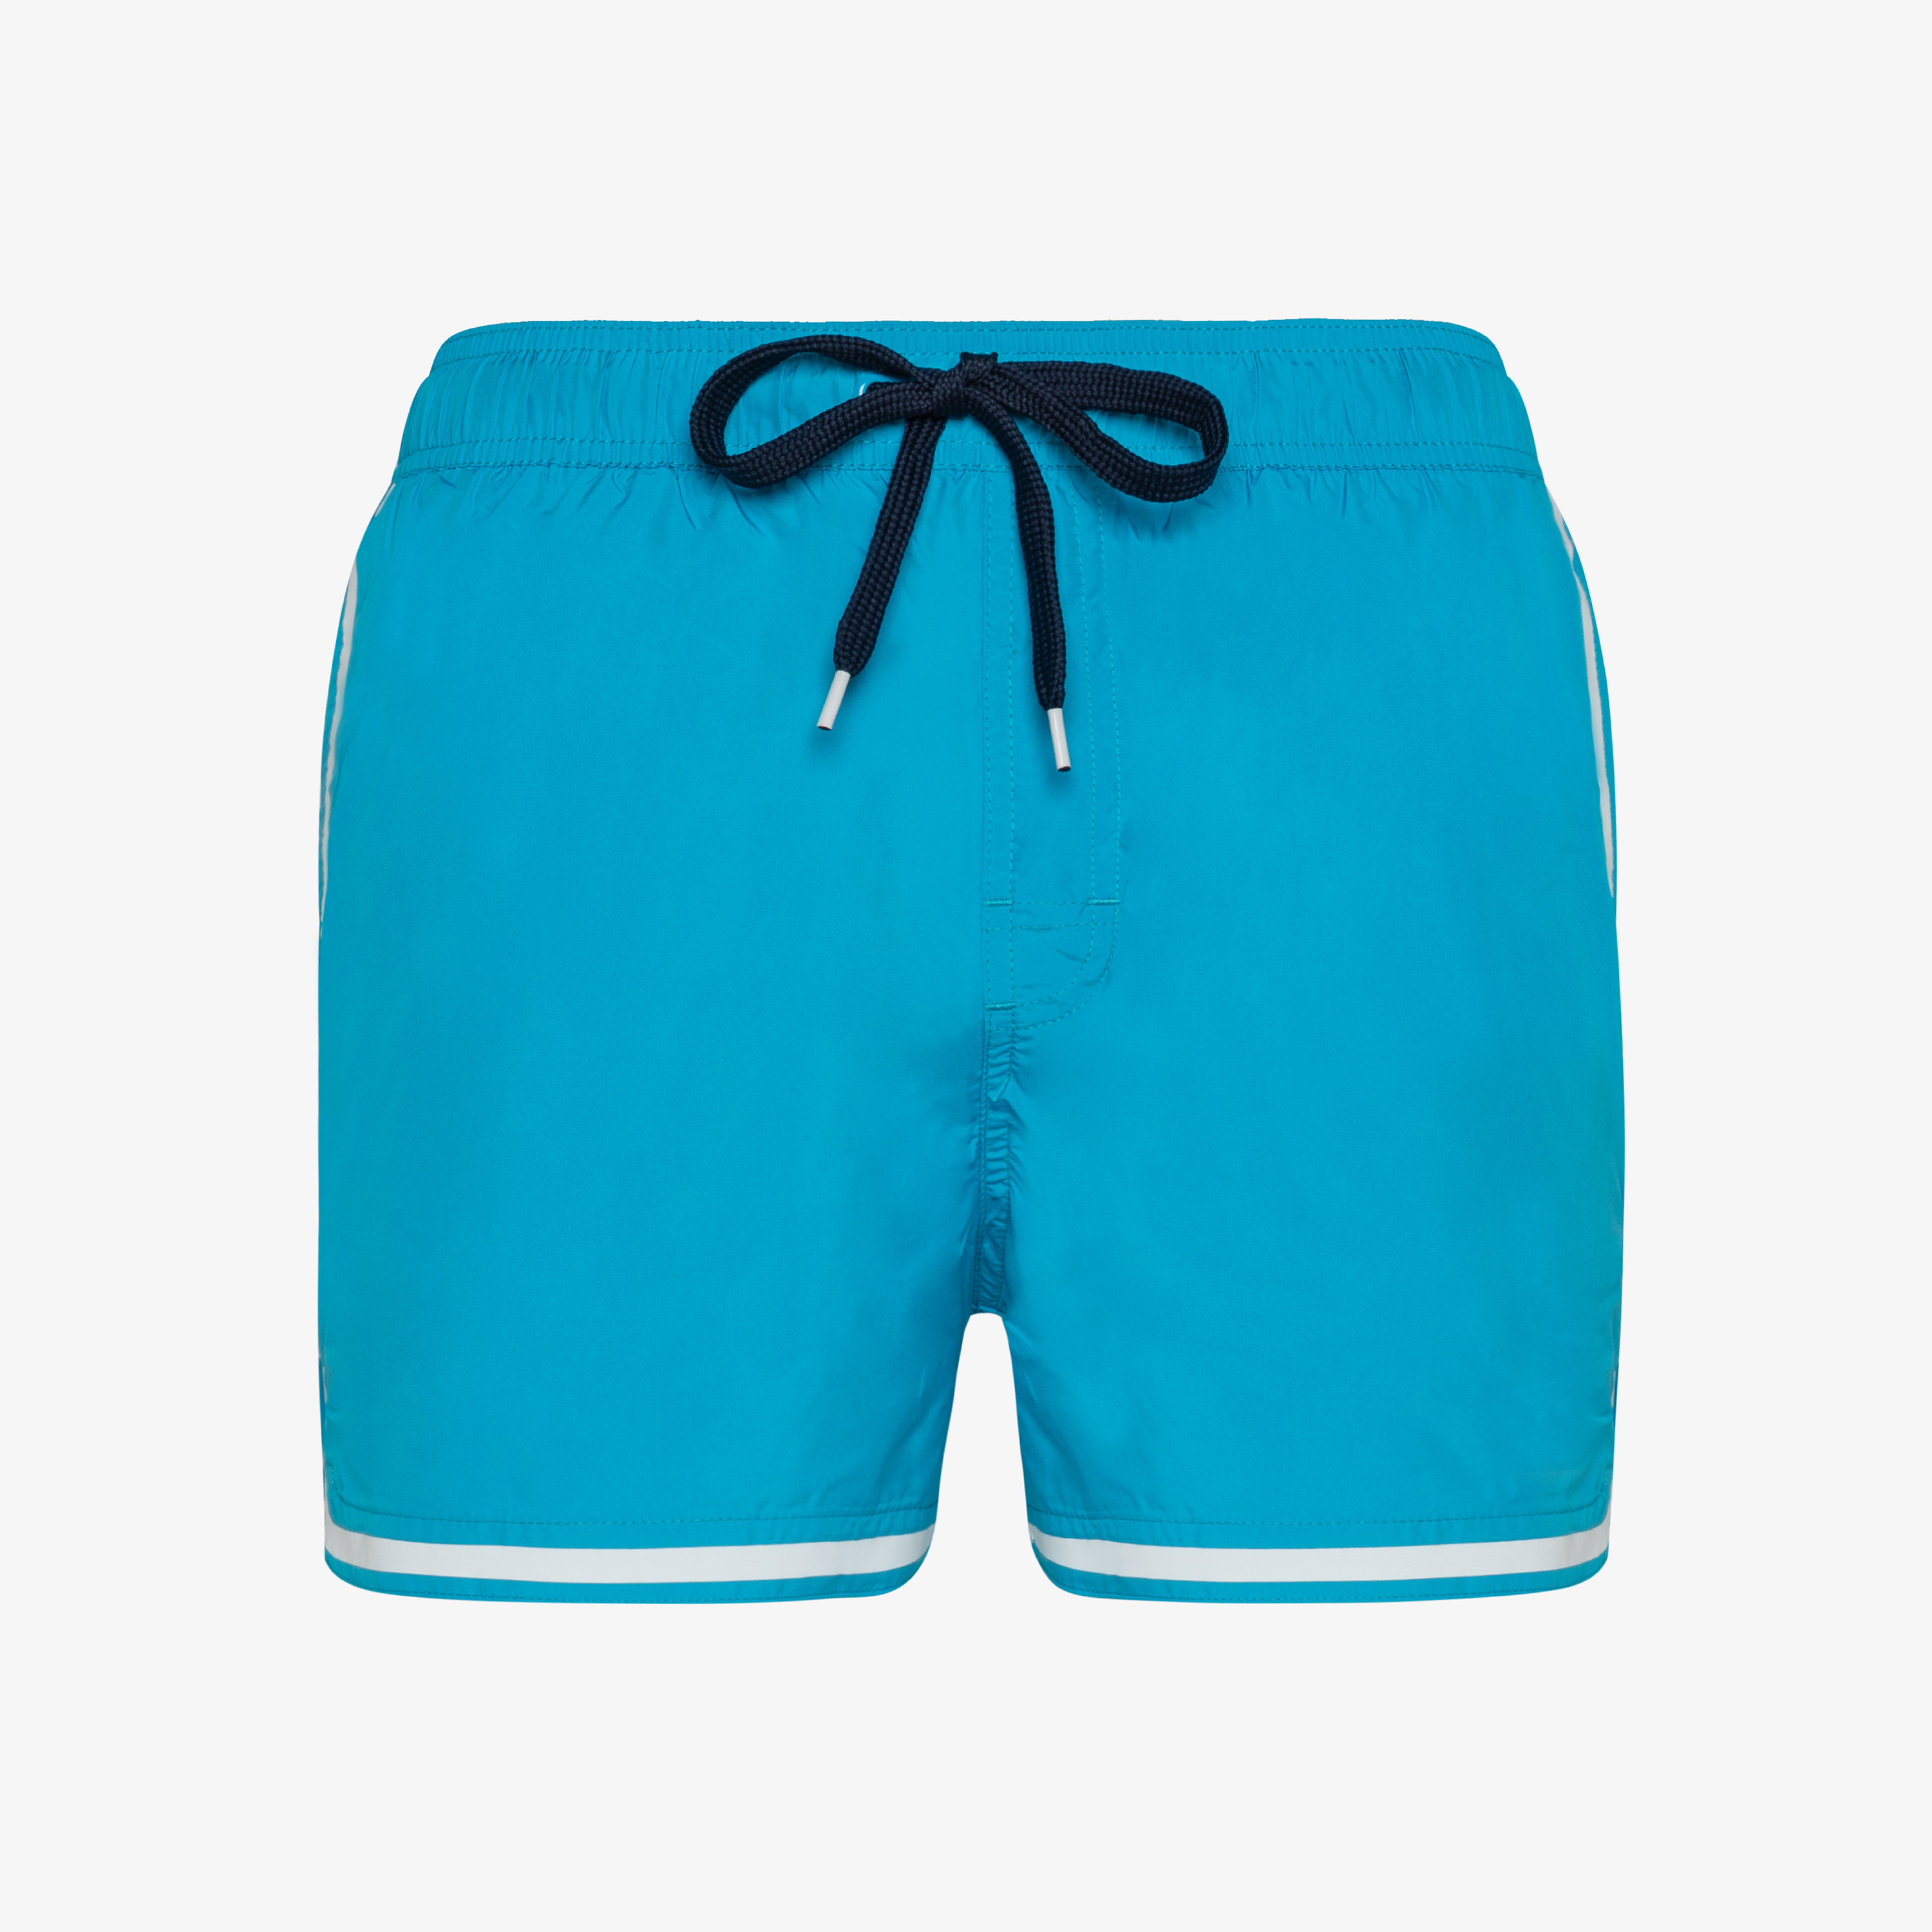 SWIM PANT SIDE BAND WHITE BLUE FLUO